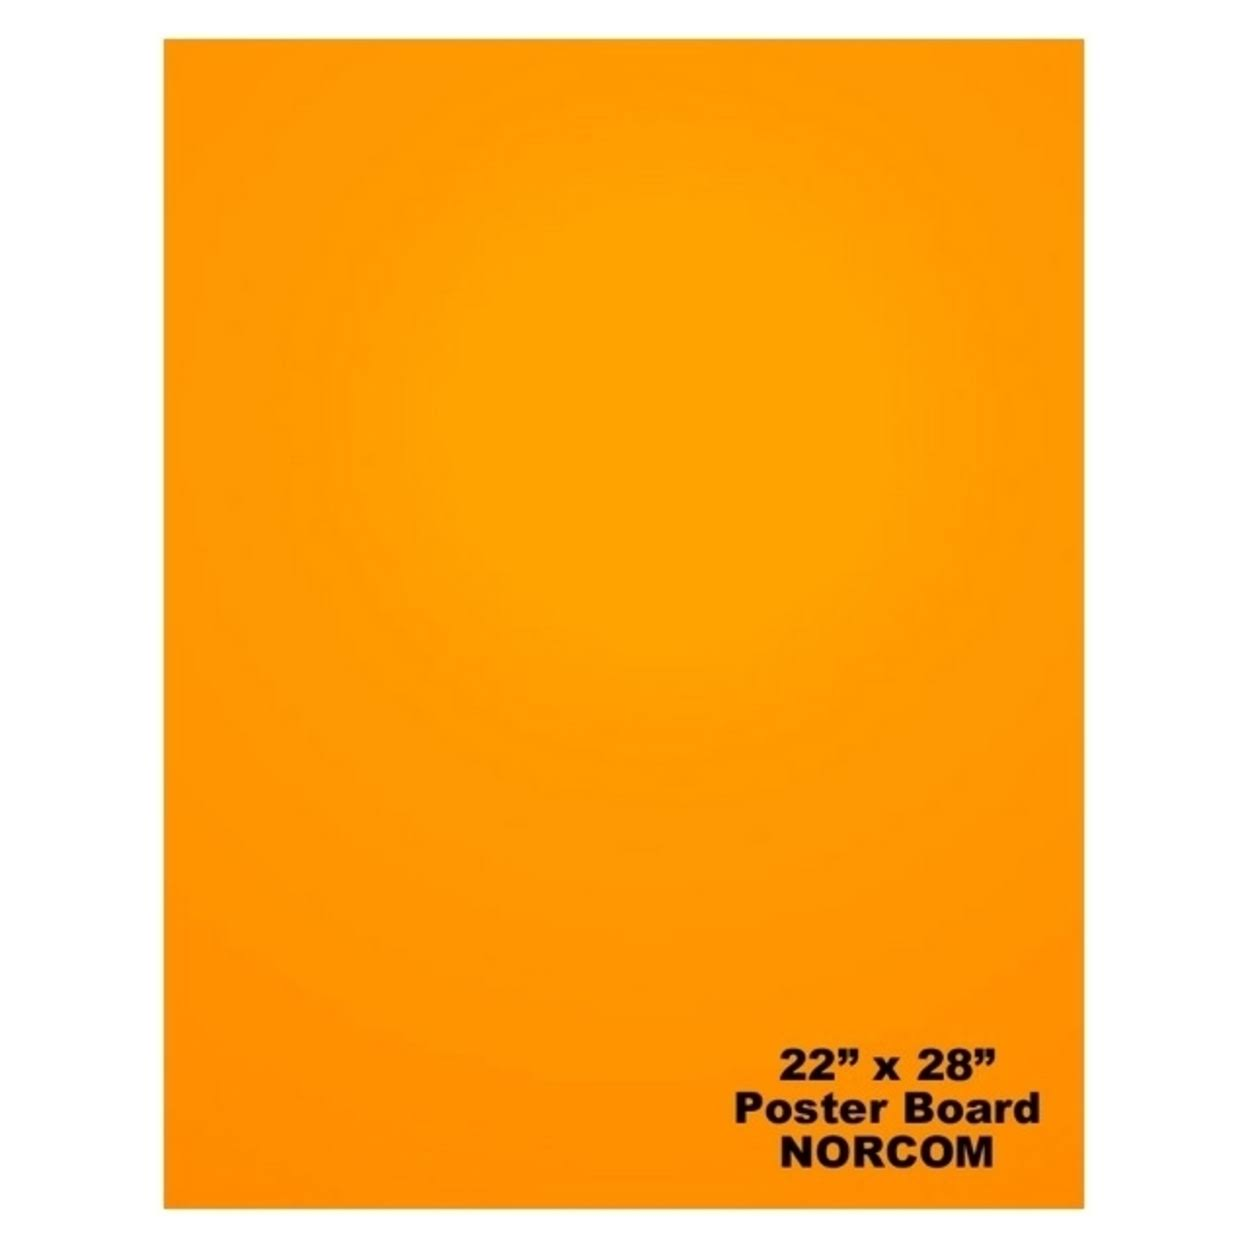 Norcom 79865-25 22 x 28 in. Poster Board, Orange - Pack of 25